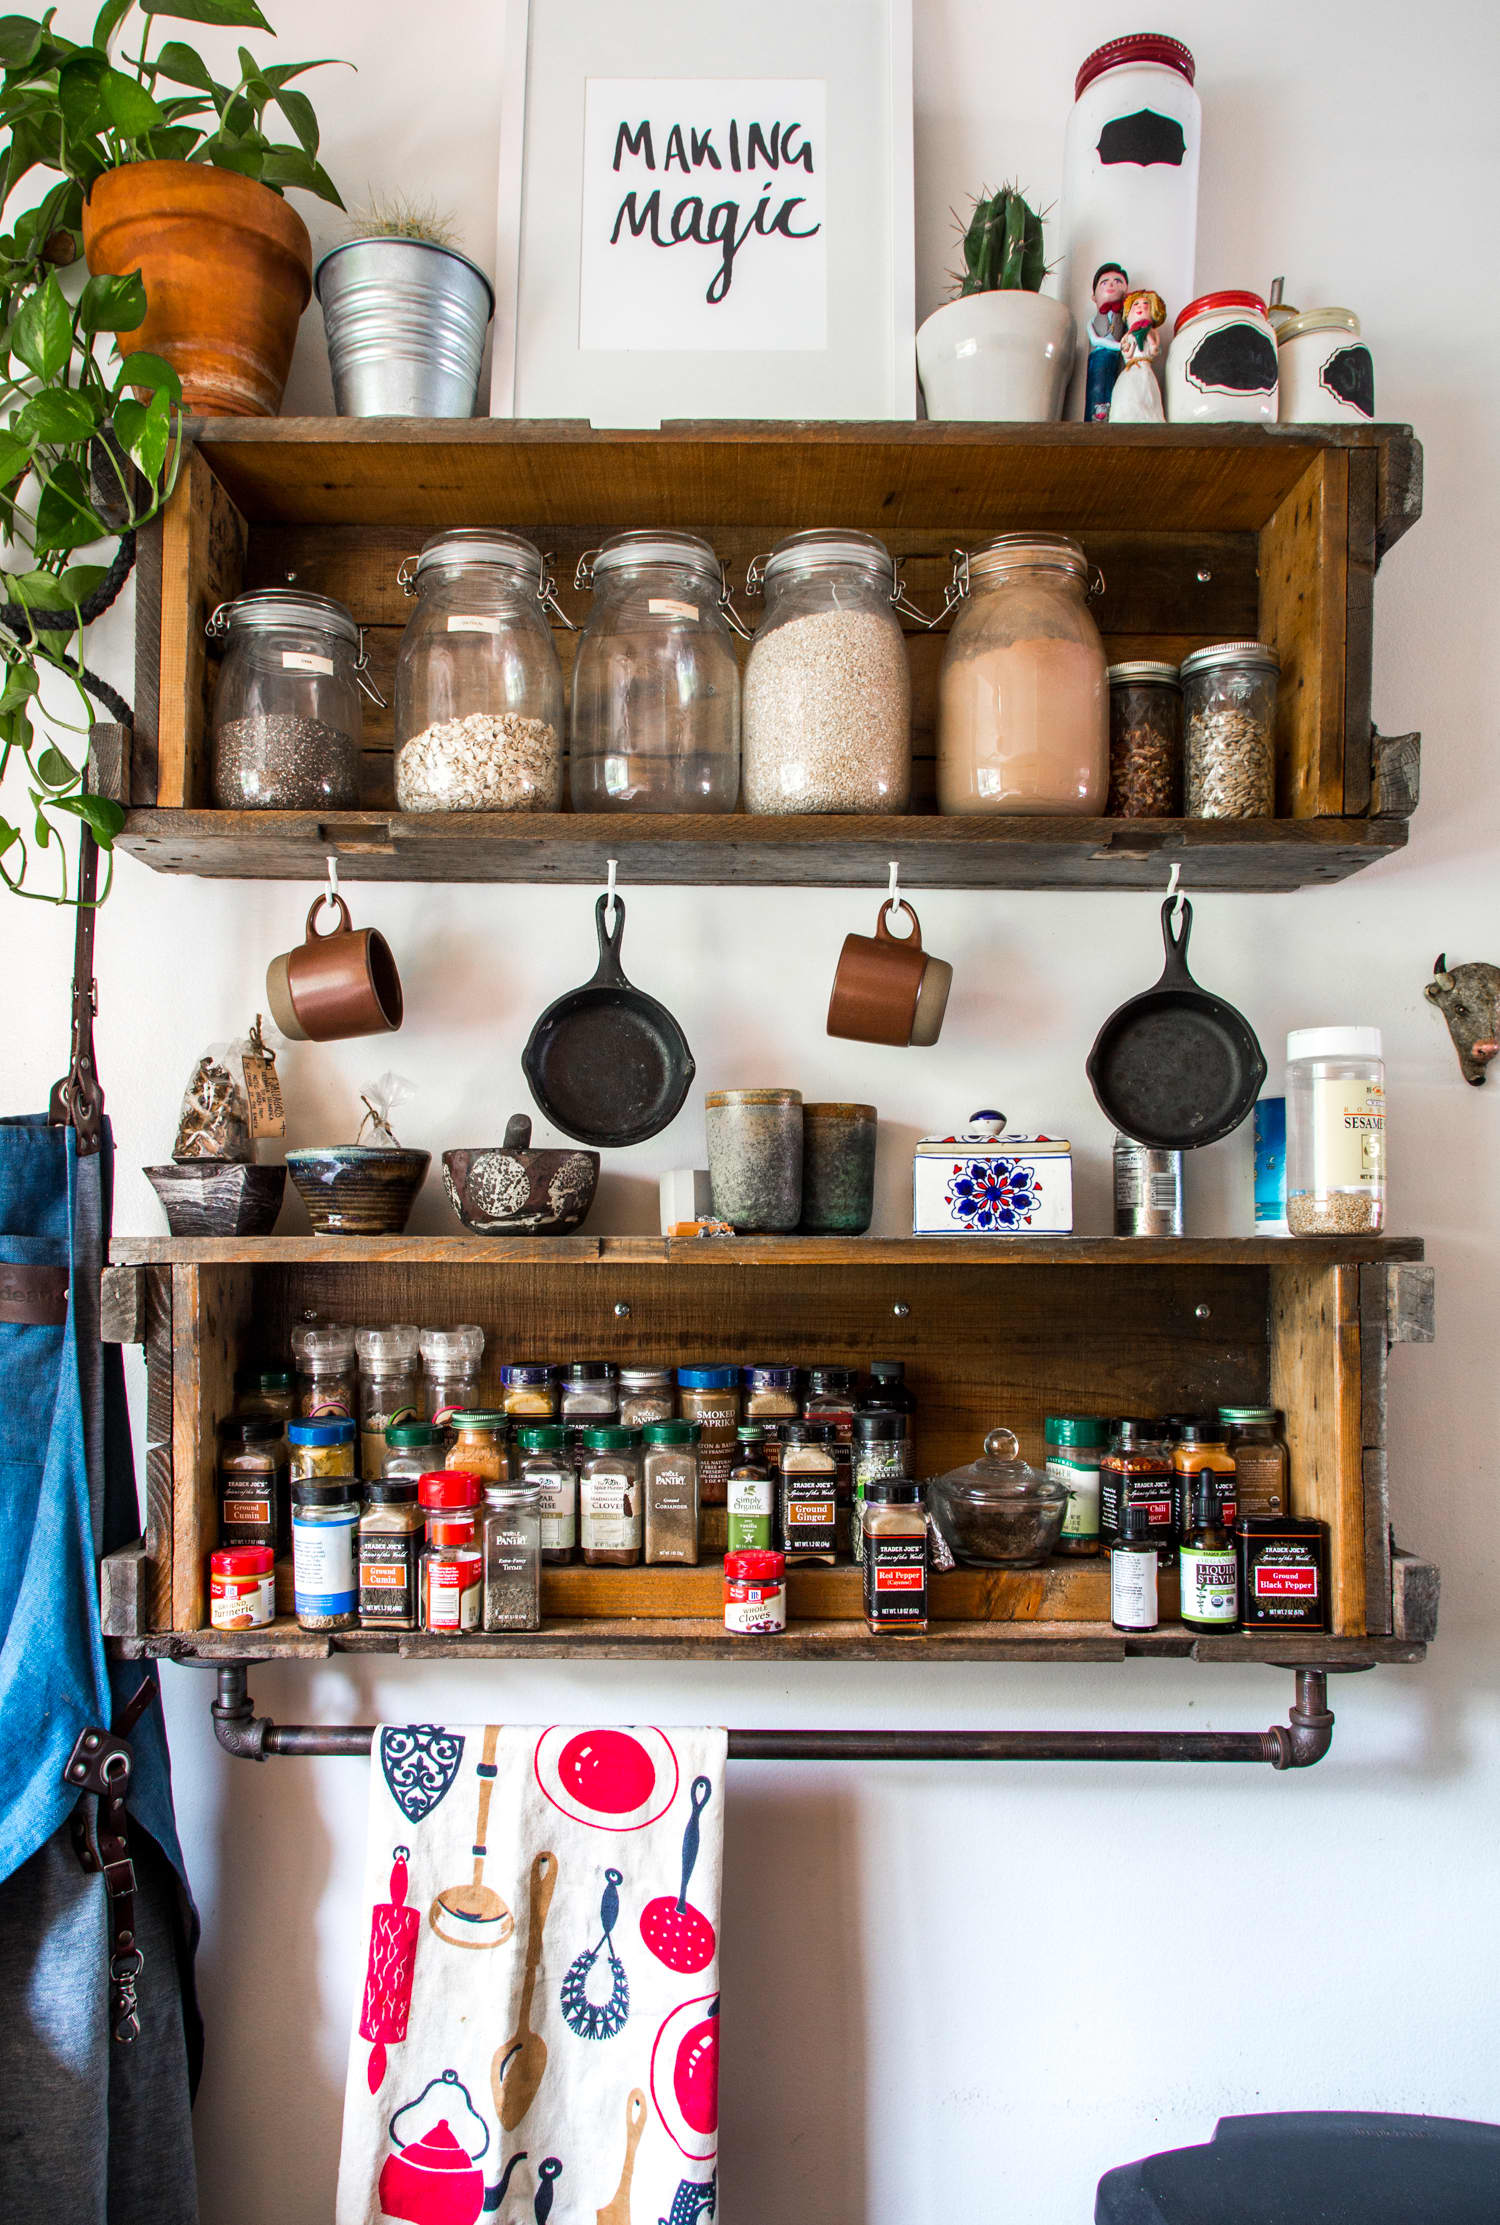 15 Ingenious Ways to Create a More Organized Kitchen: gallery image 15